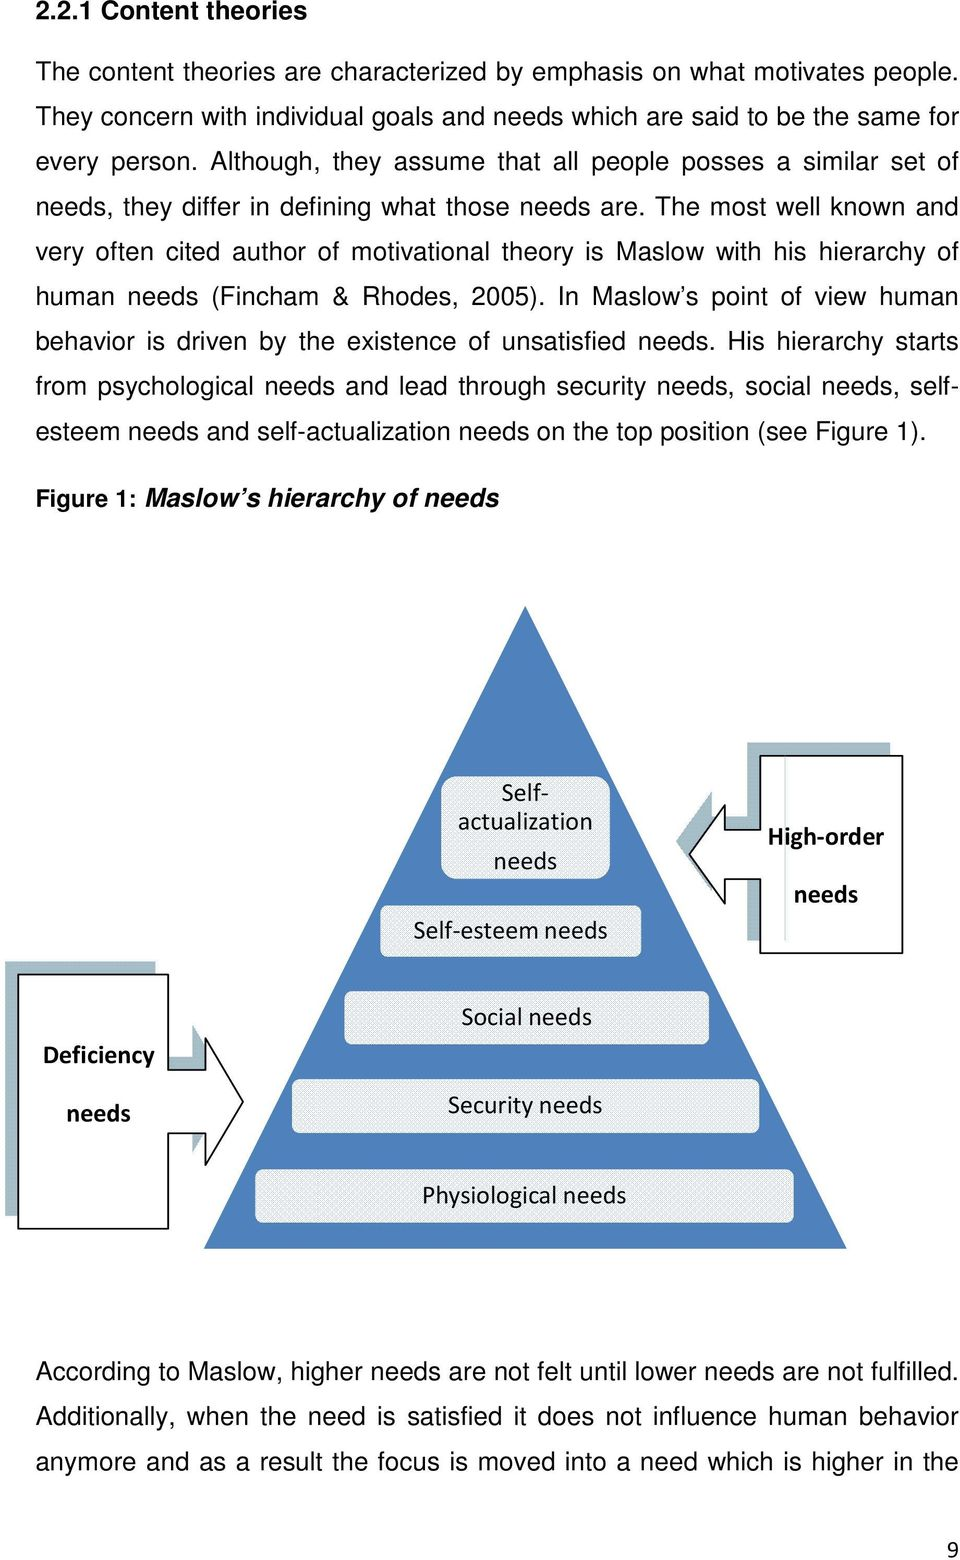 The most well known and very often cited author of motivational theory is Maslow with his hierarchy of human needs (Fincham & Rhodes, 2005).